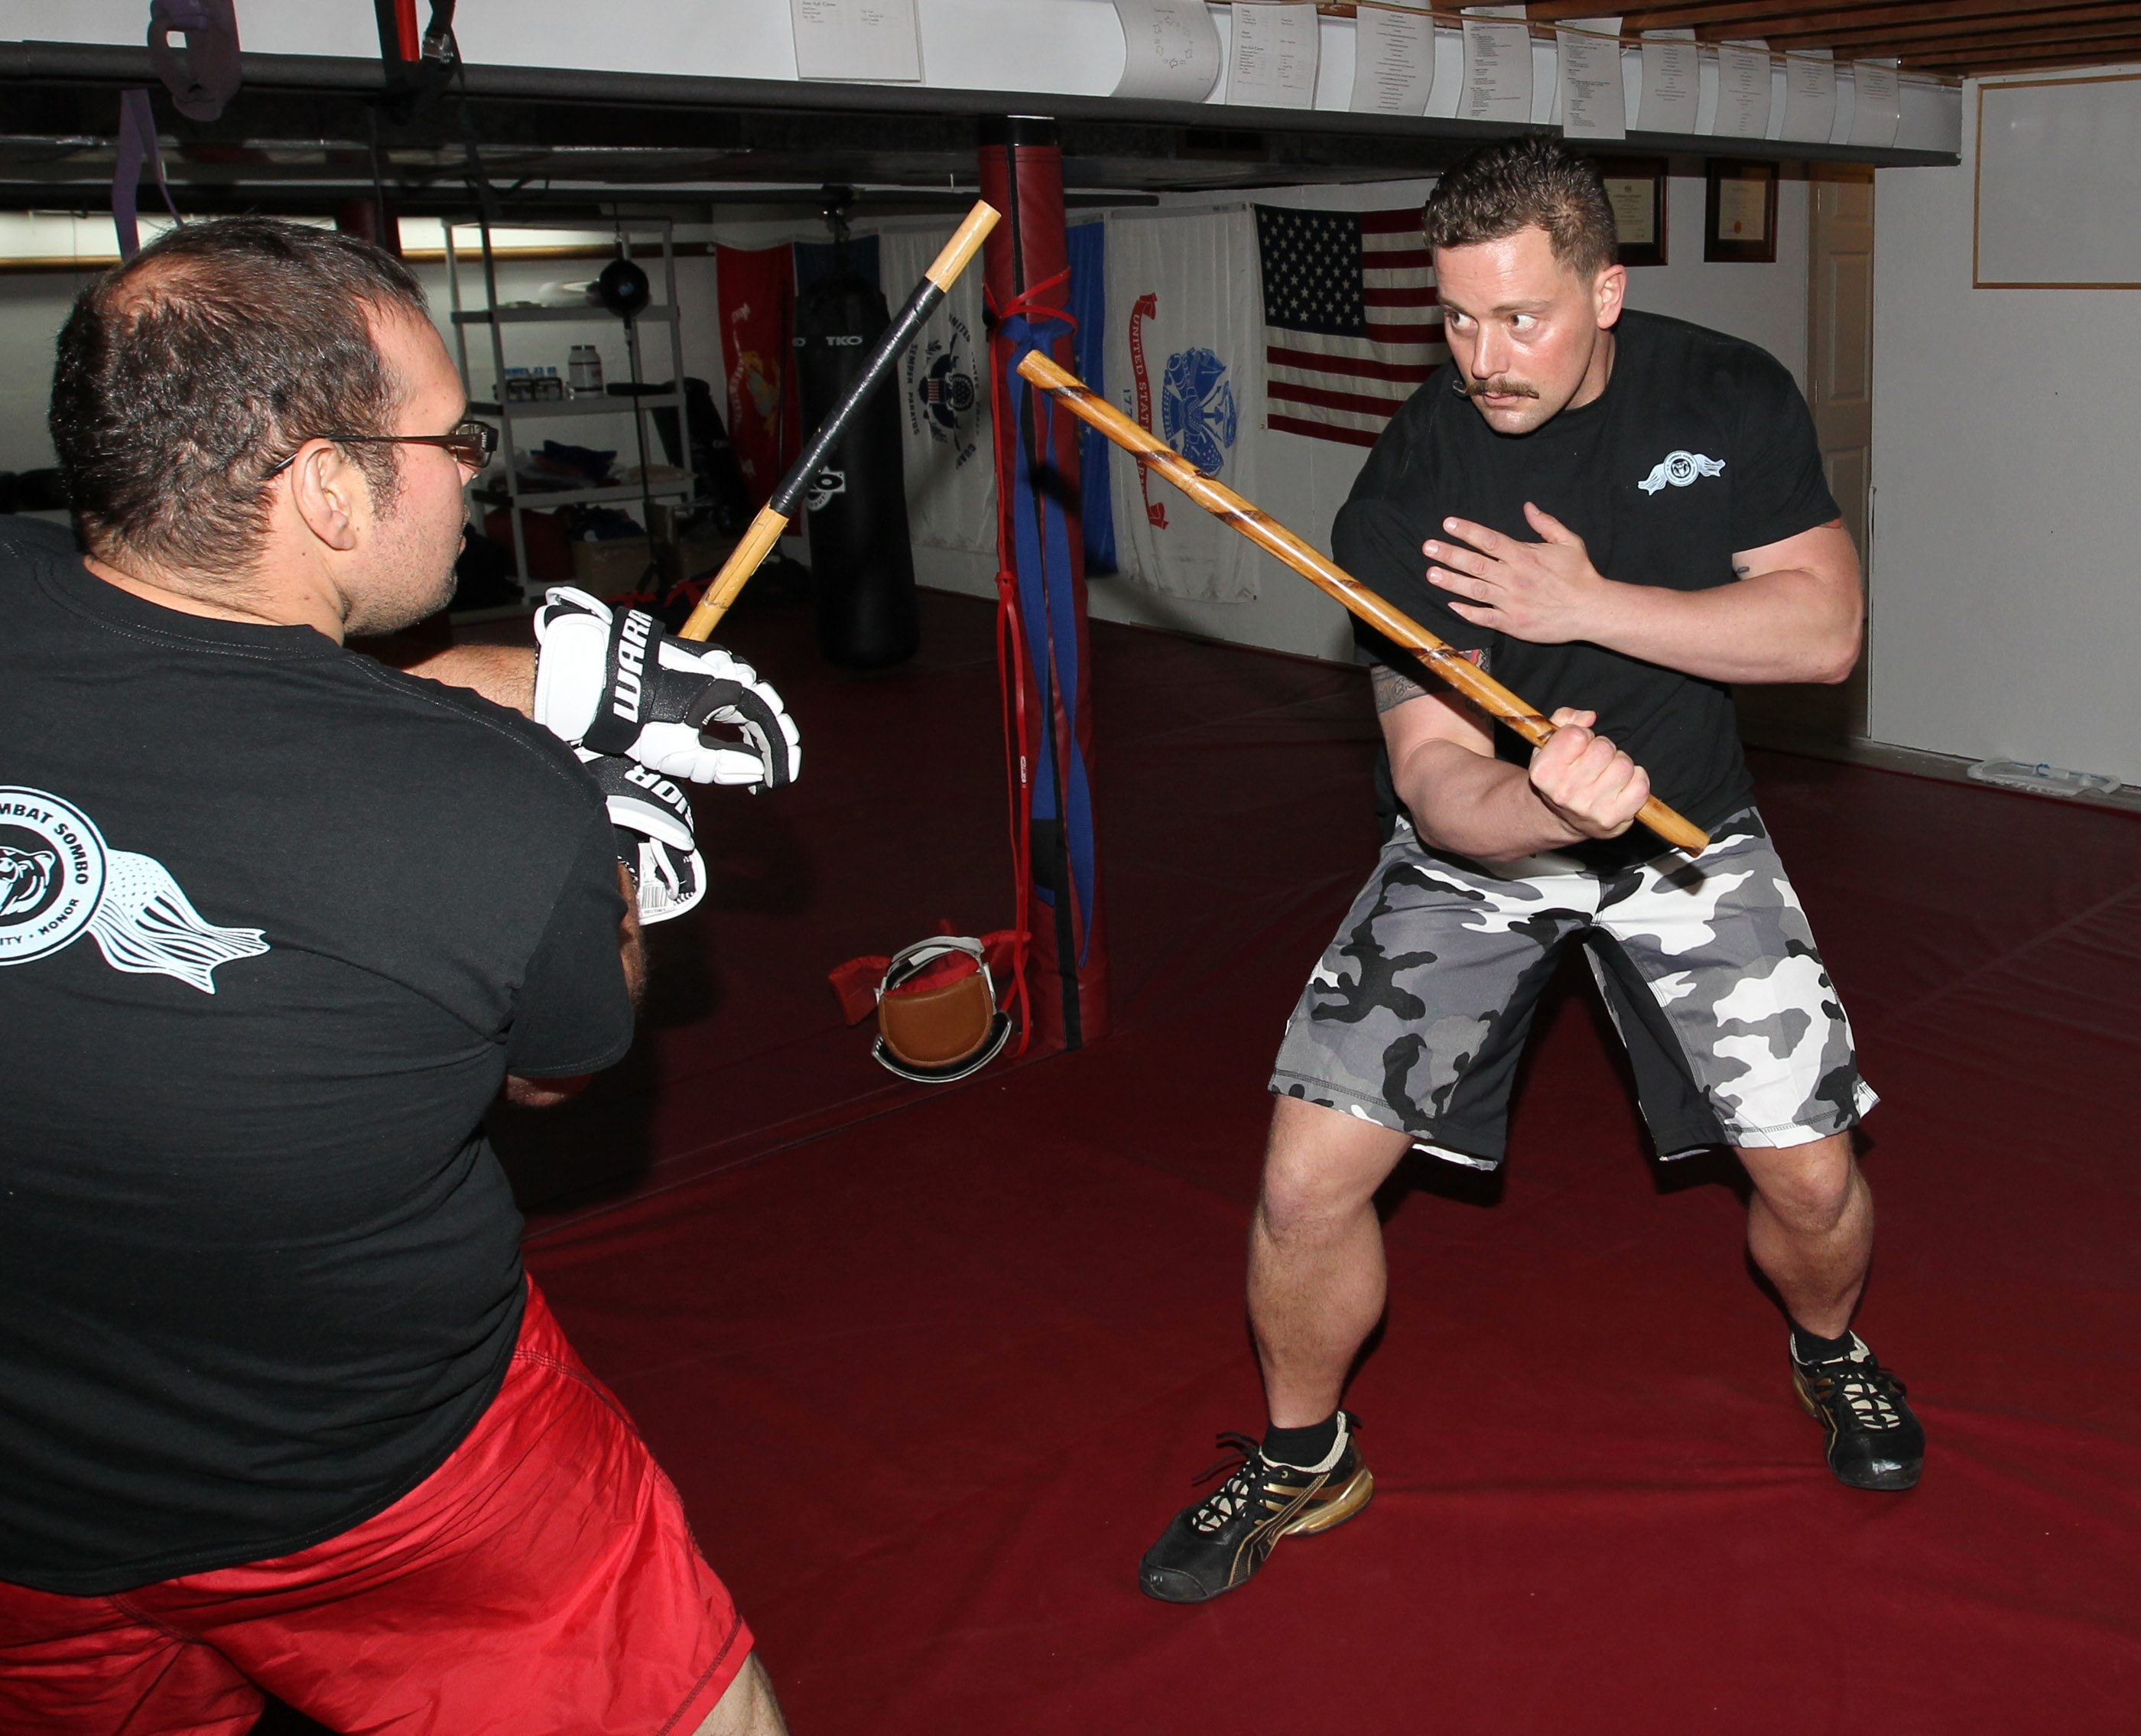 John Lehmann, right, practicing with Michael Wagner, headlines a Stickfighting World card tonight in Hamilton, Ont.